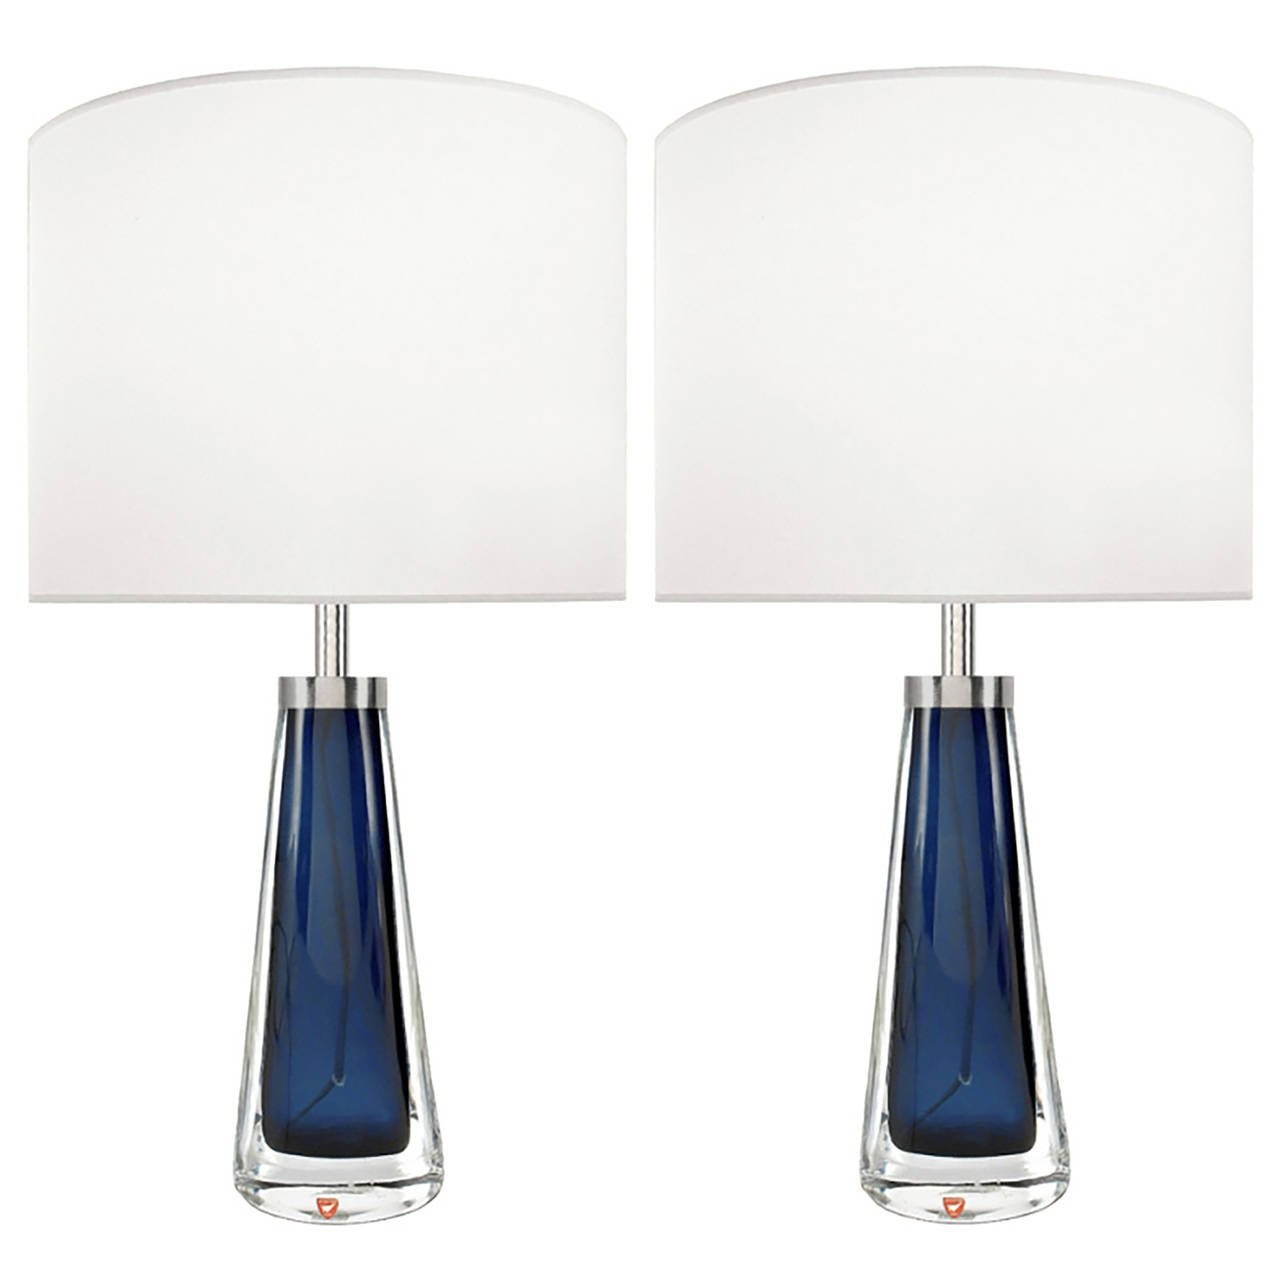 Pair of Nils Landberg for Orrefors Blue Glass Lamps